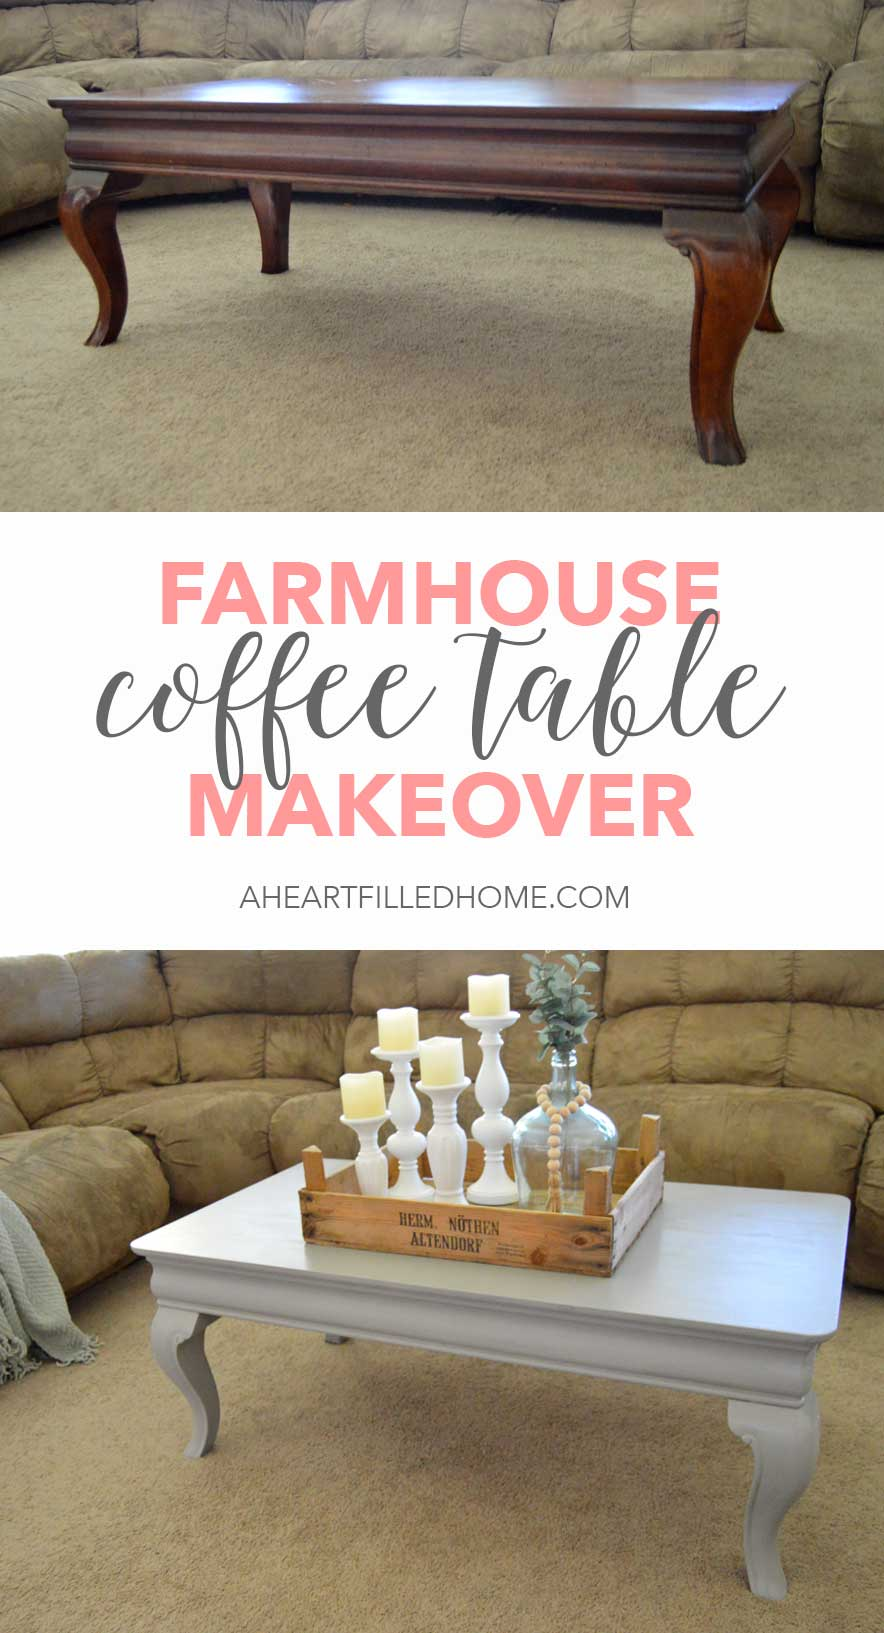 Beautiful Coffee Table Farmhouse Coffee Table Makeover A Heart Filled Home Diy Home